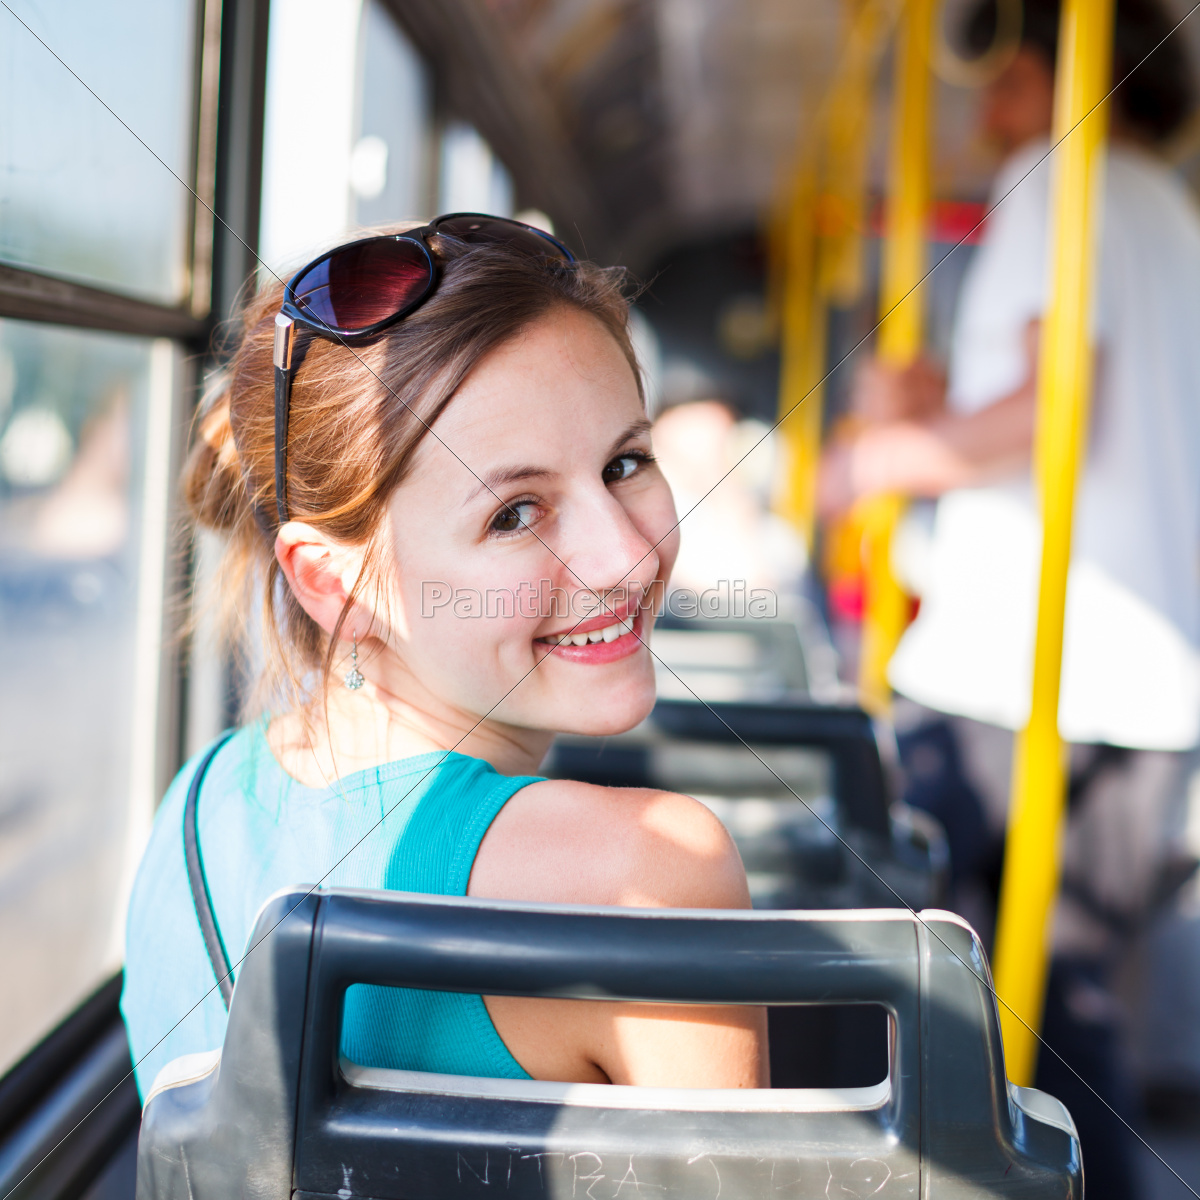 pretty, , young, woman, on, a, streetcar/tramway, - 10149987